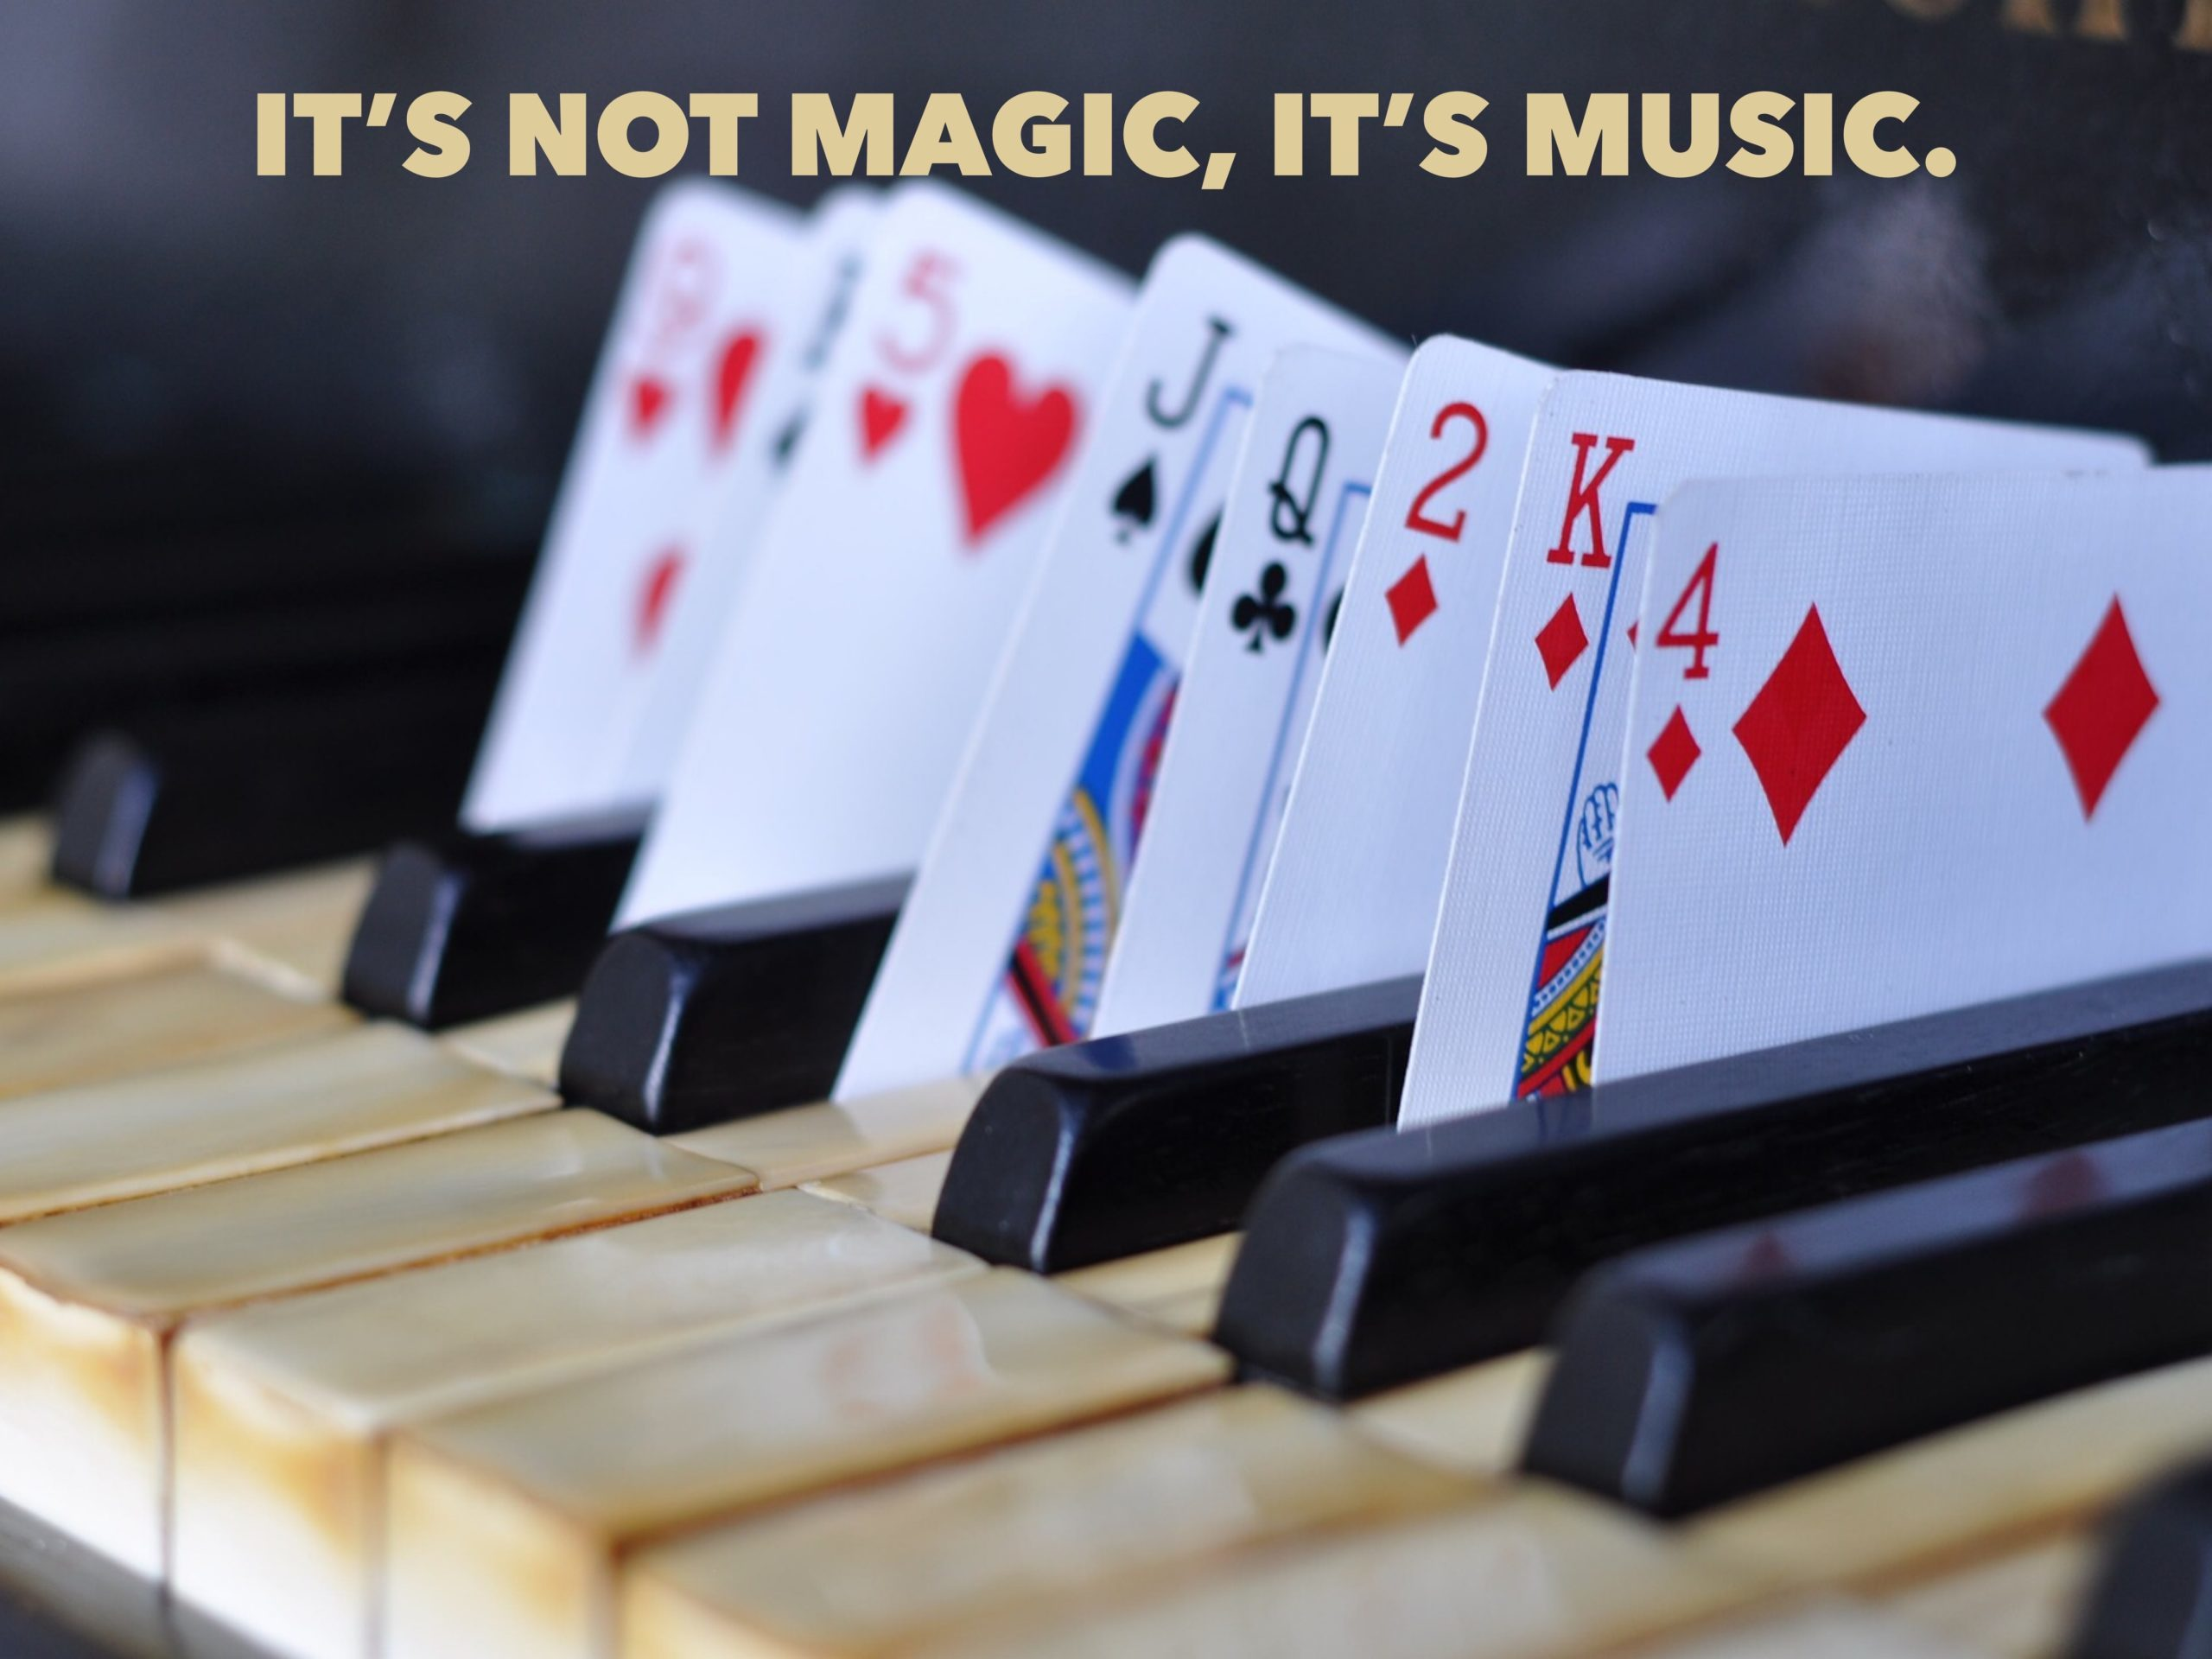 It's Not Magic, It's Music.